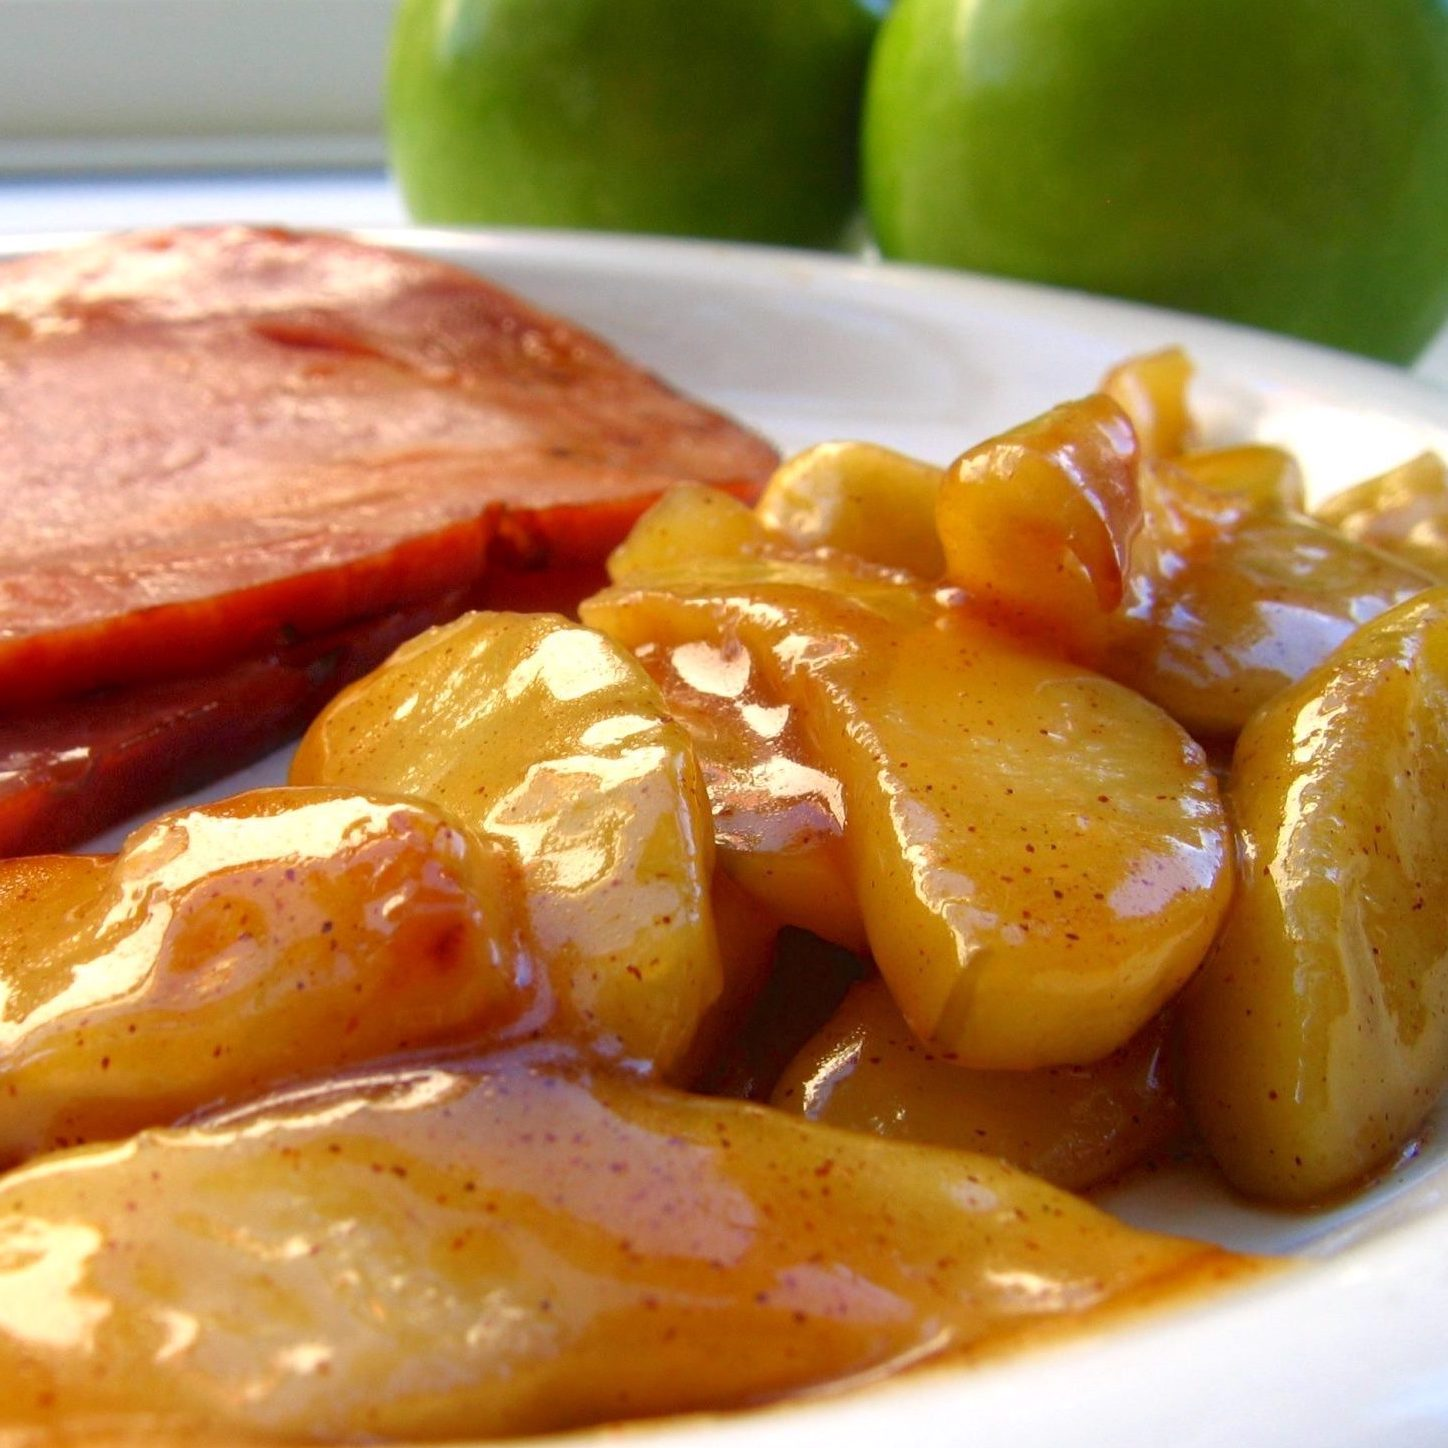 Sauteed Apples on a plate with ham